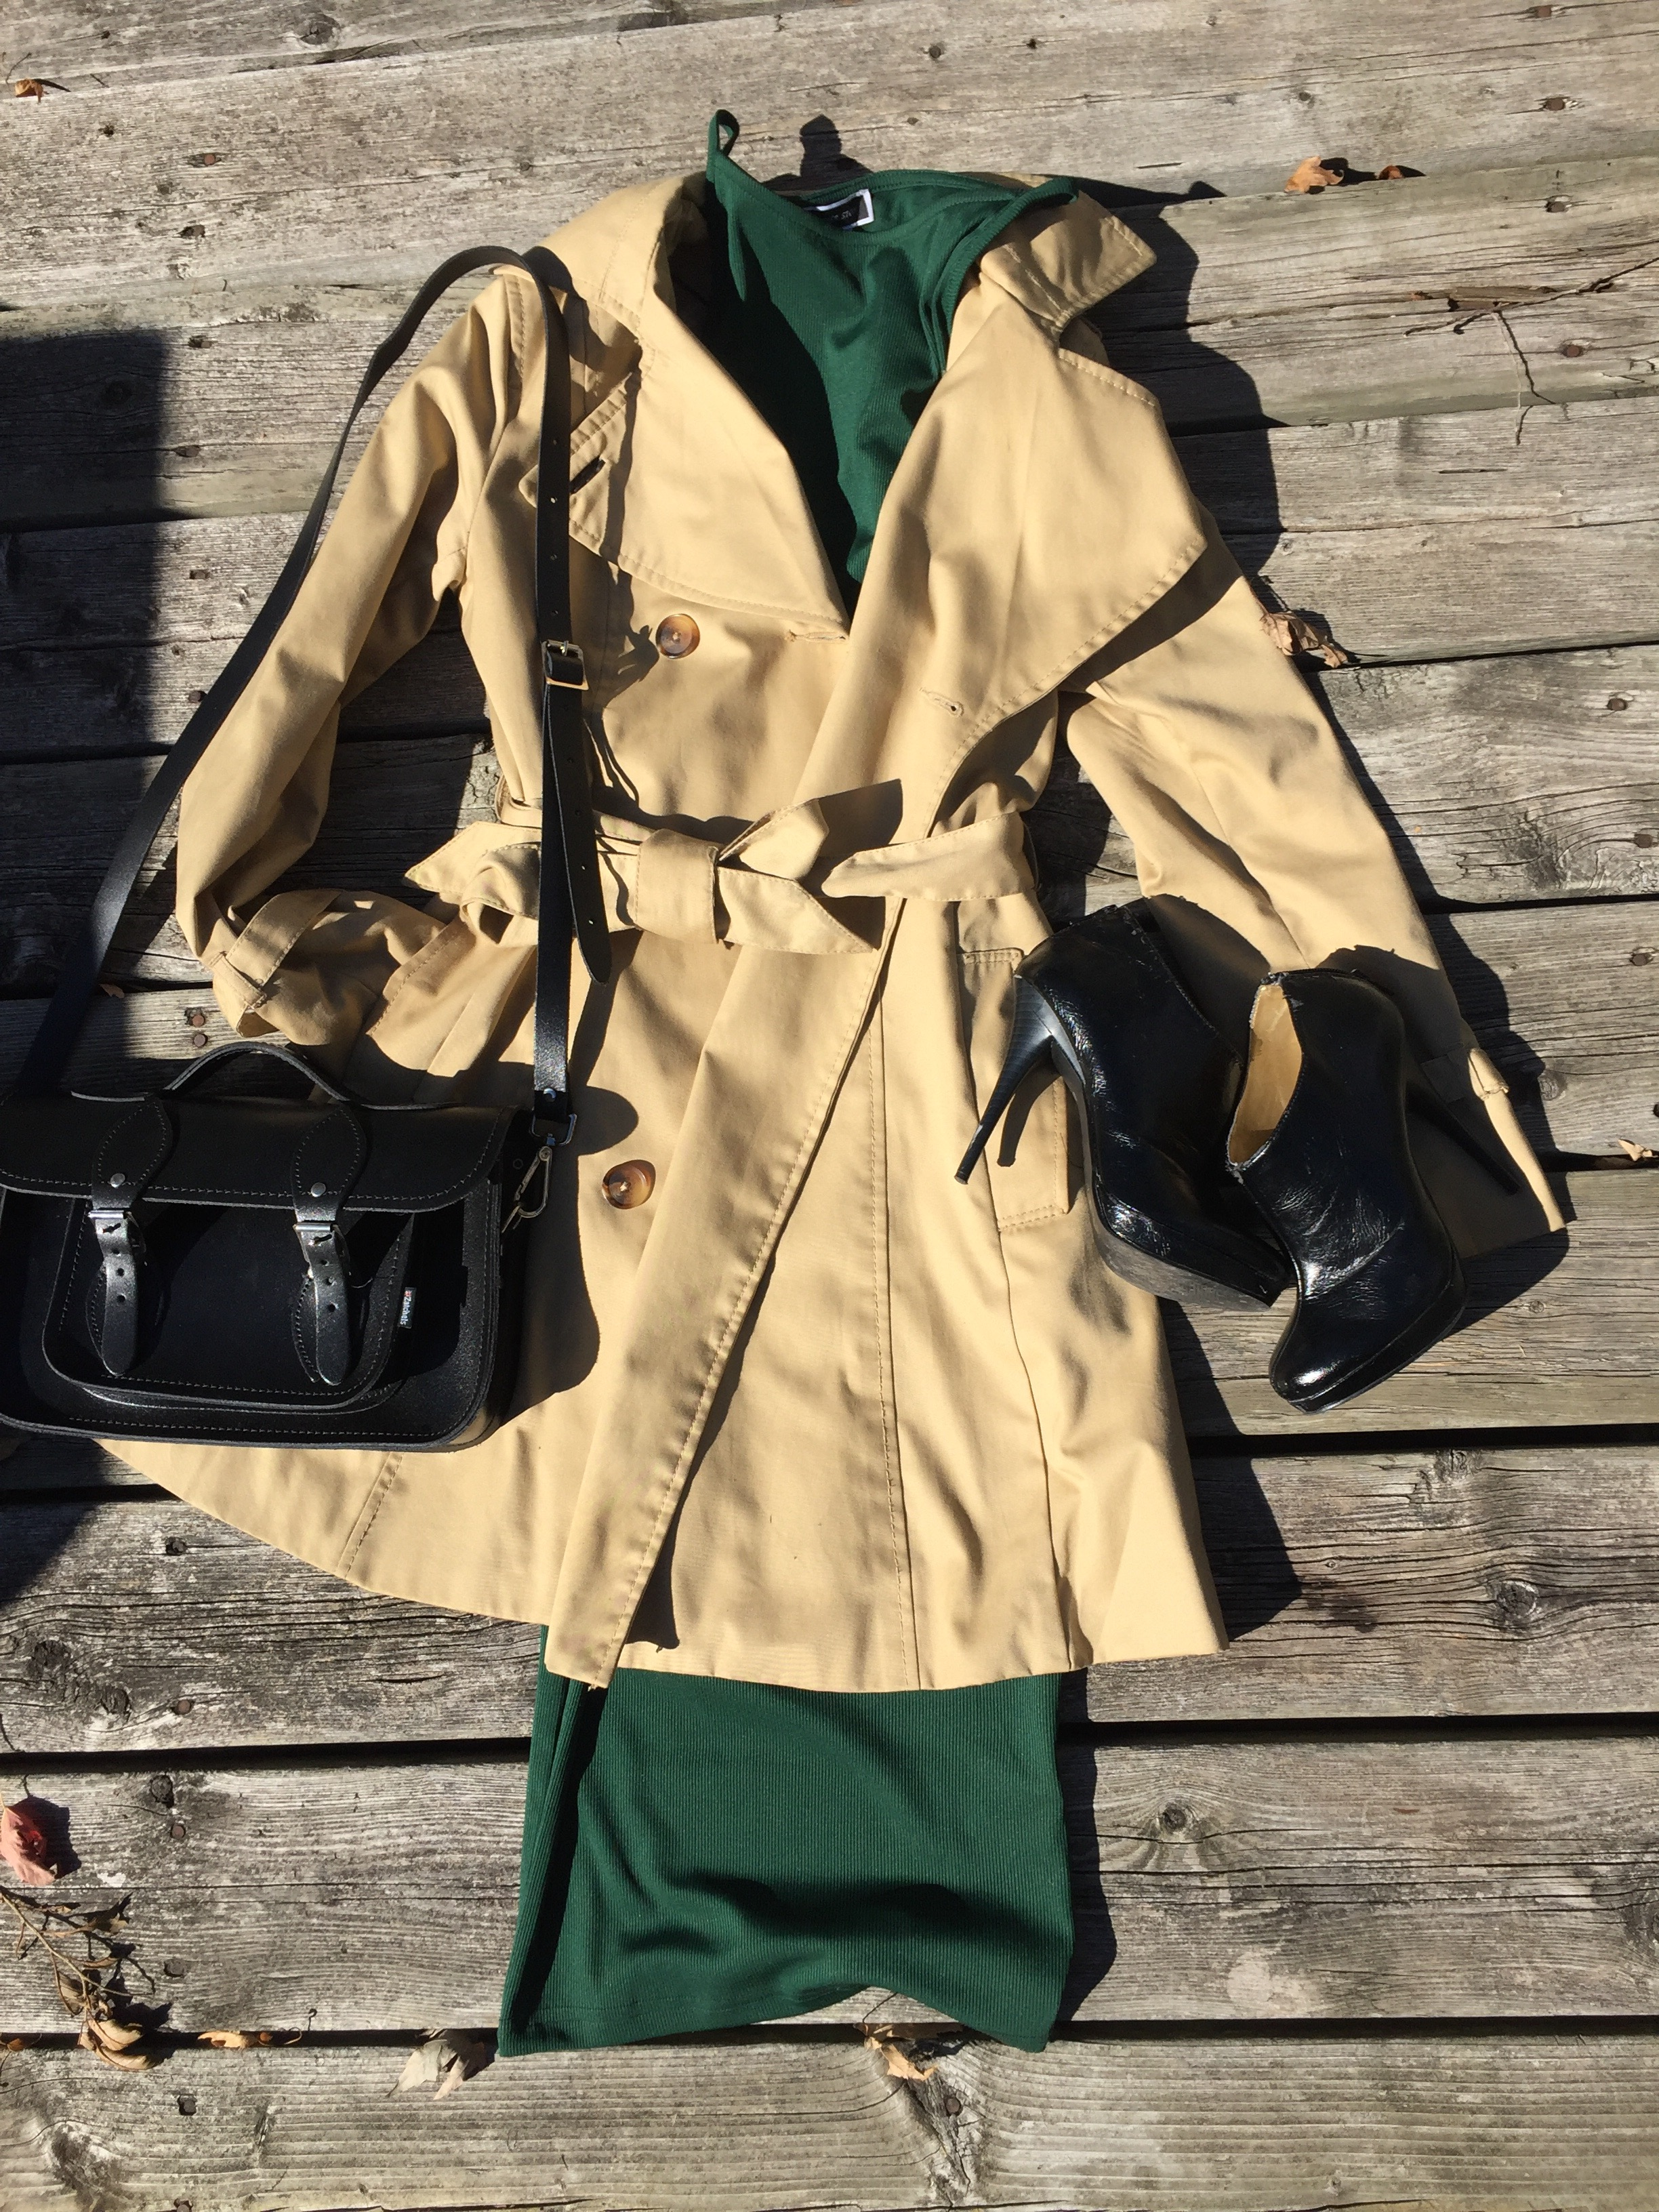 Green midi dress with flared  tan trench coat, black booties and black hand bag